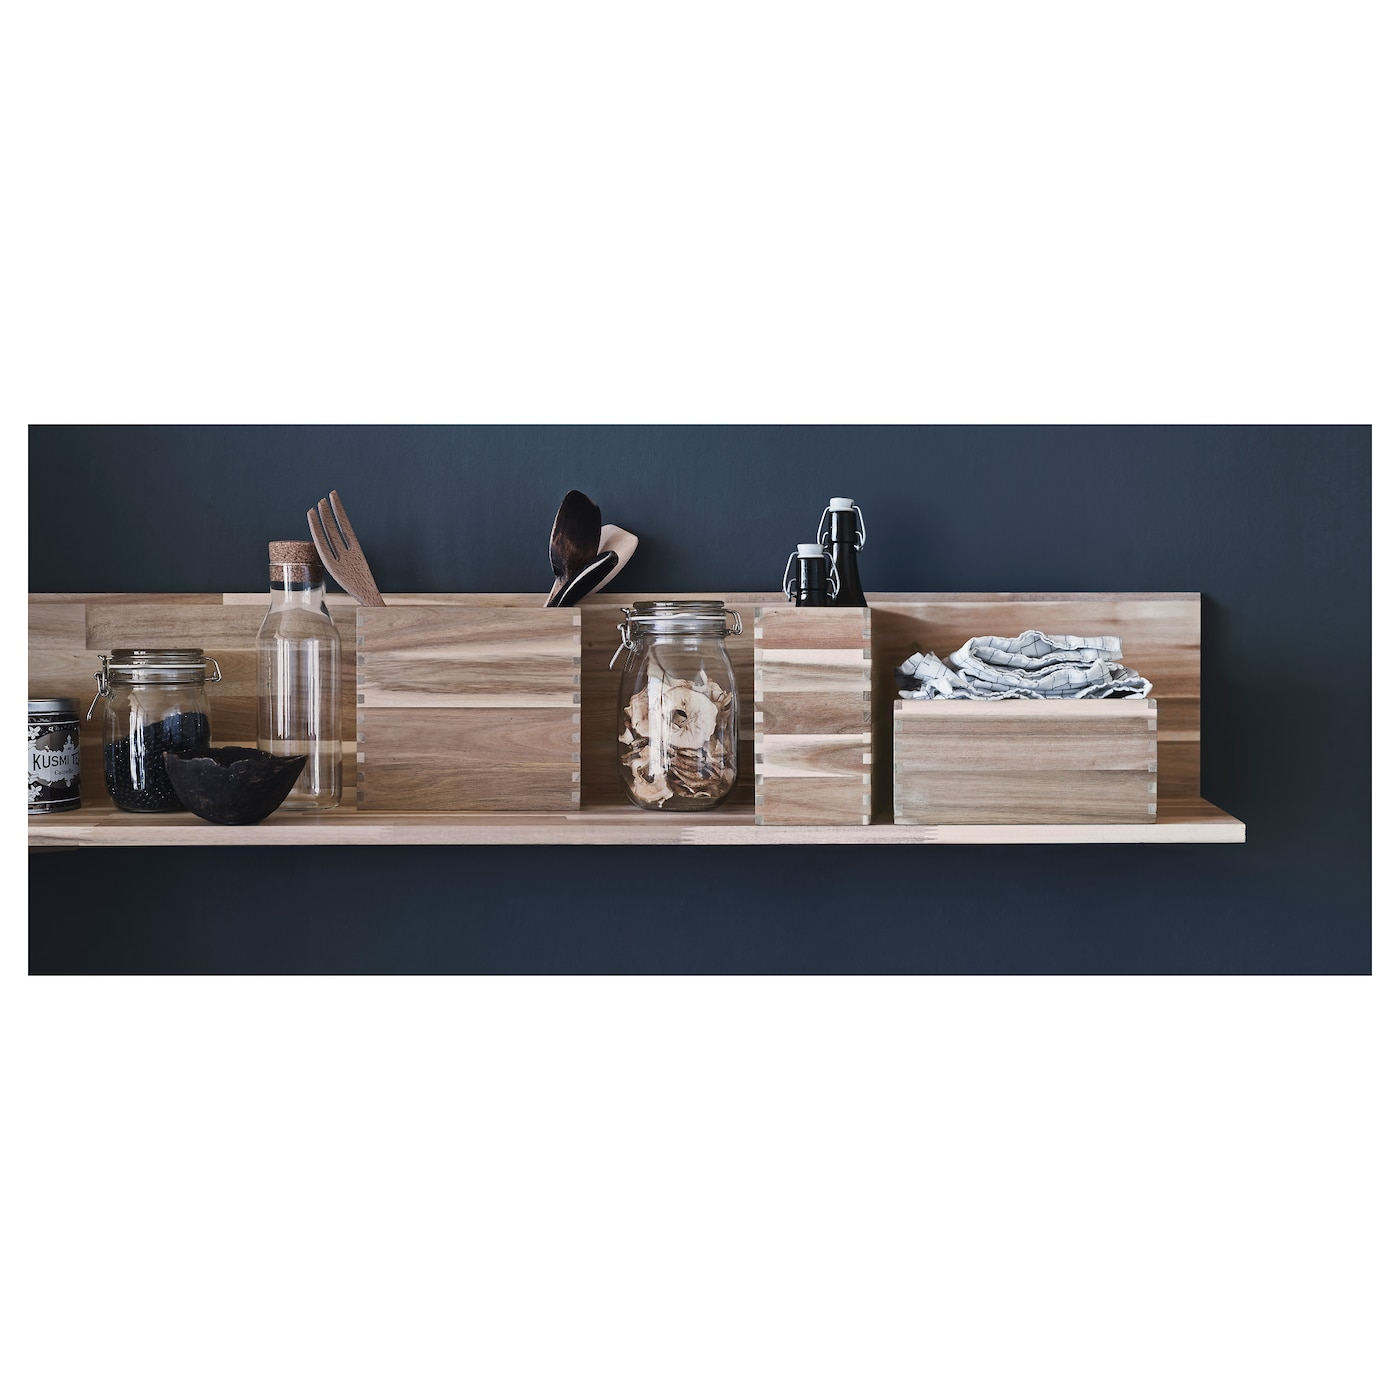 Ikea Skogsta Wall Shelf Solid Wood Is A Durable Natural Material